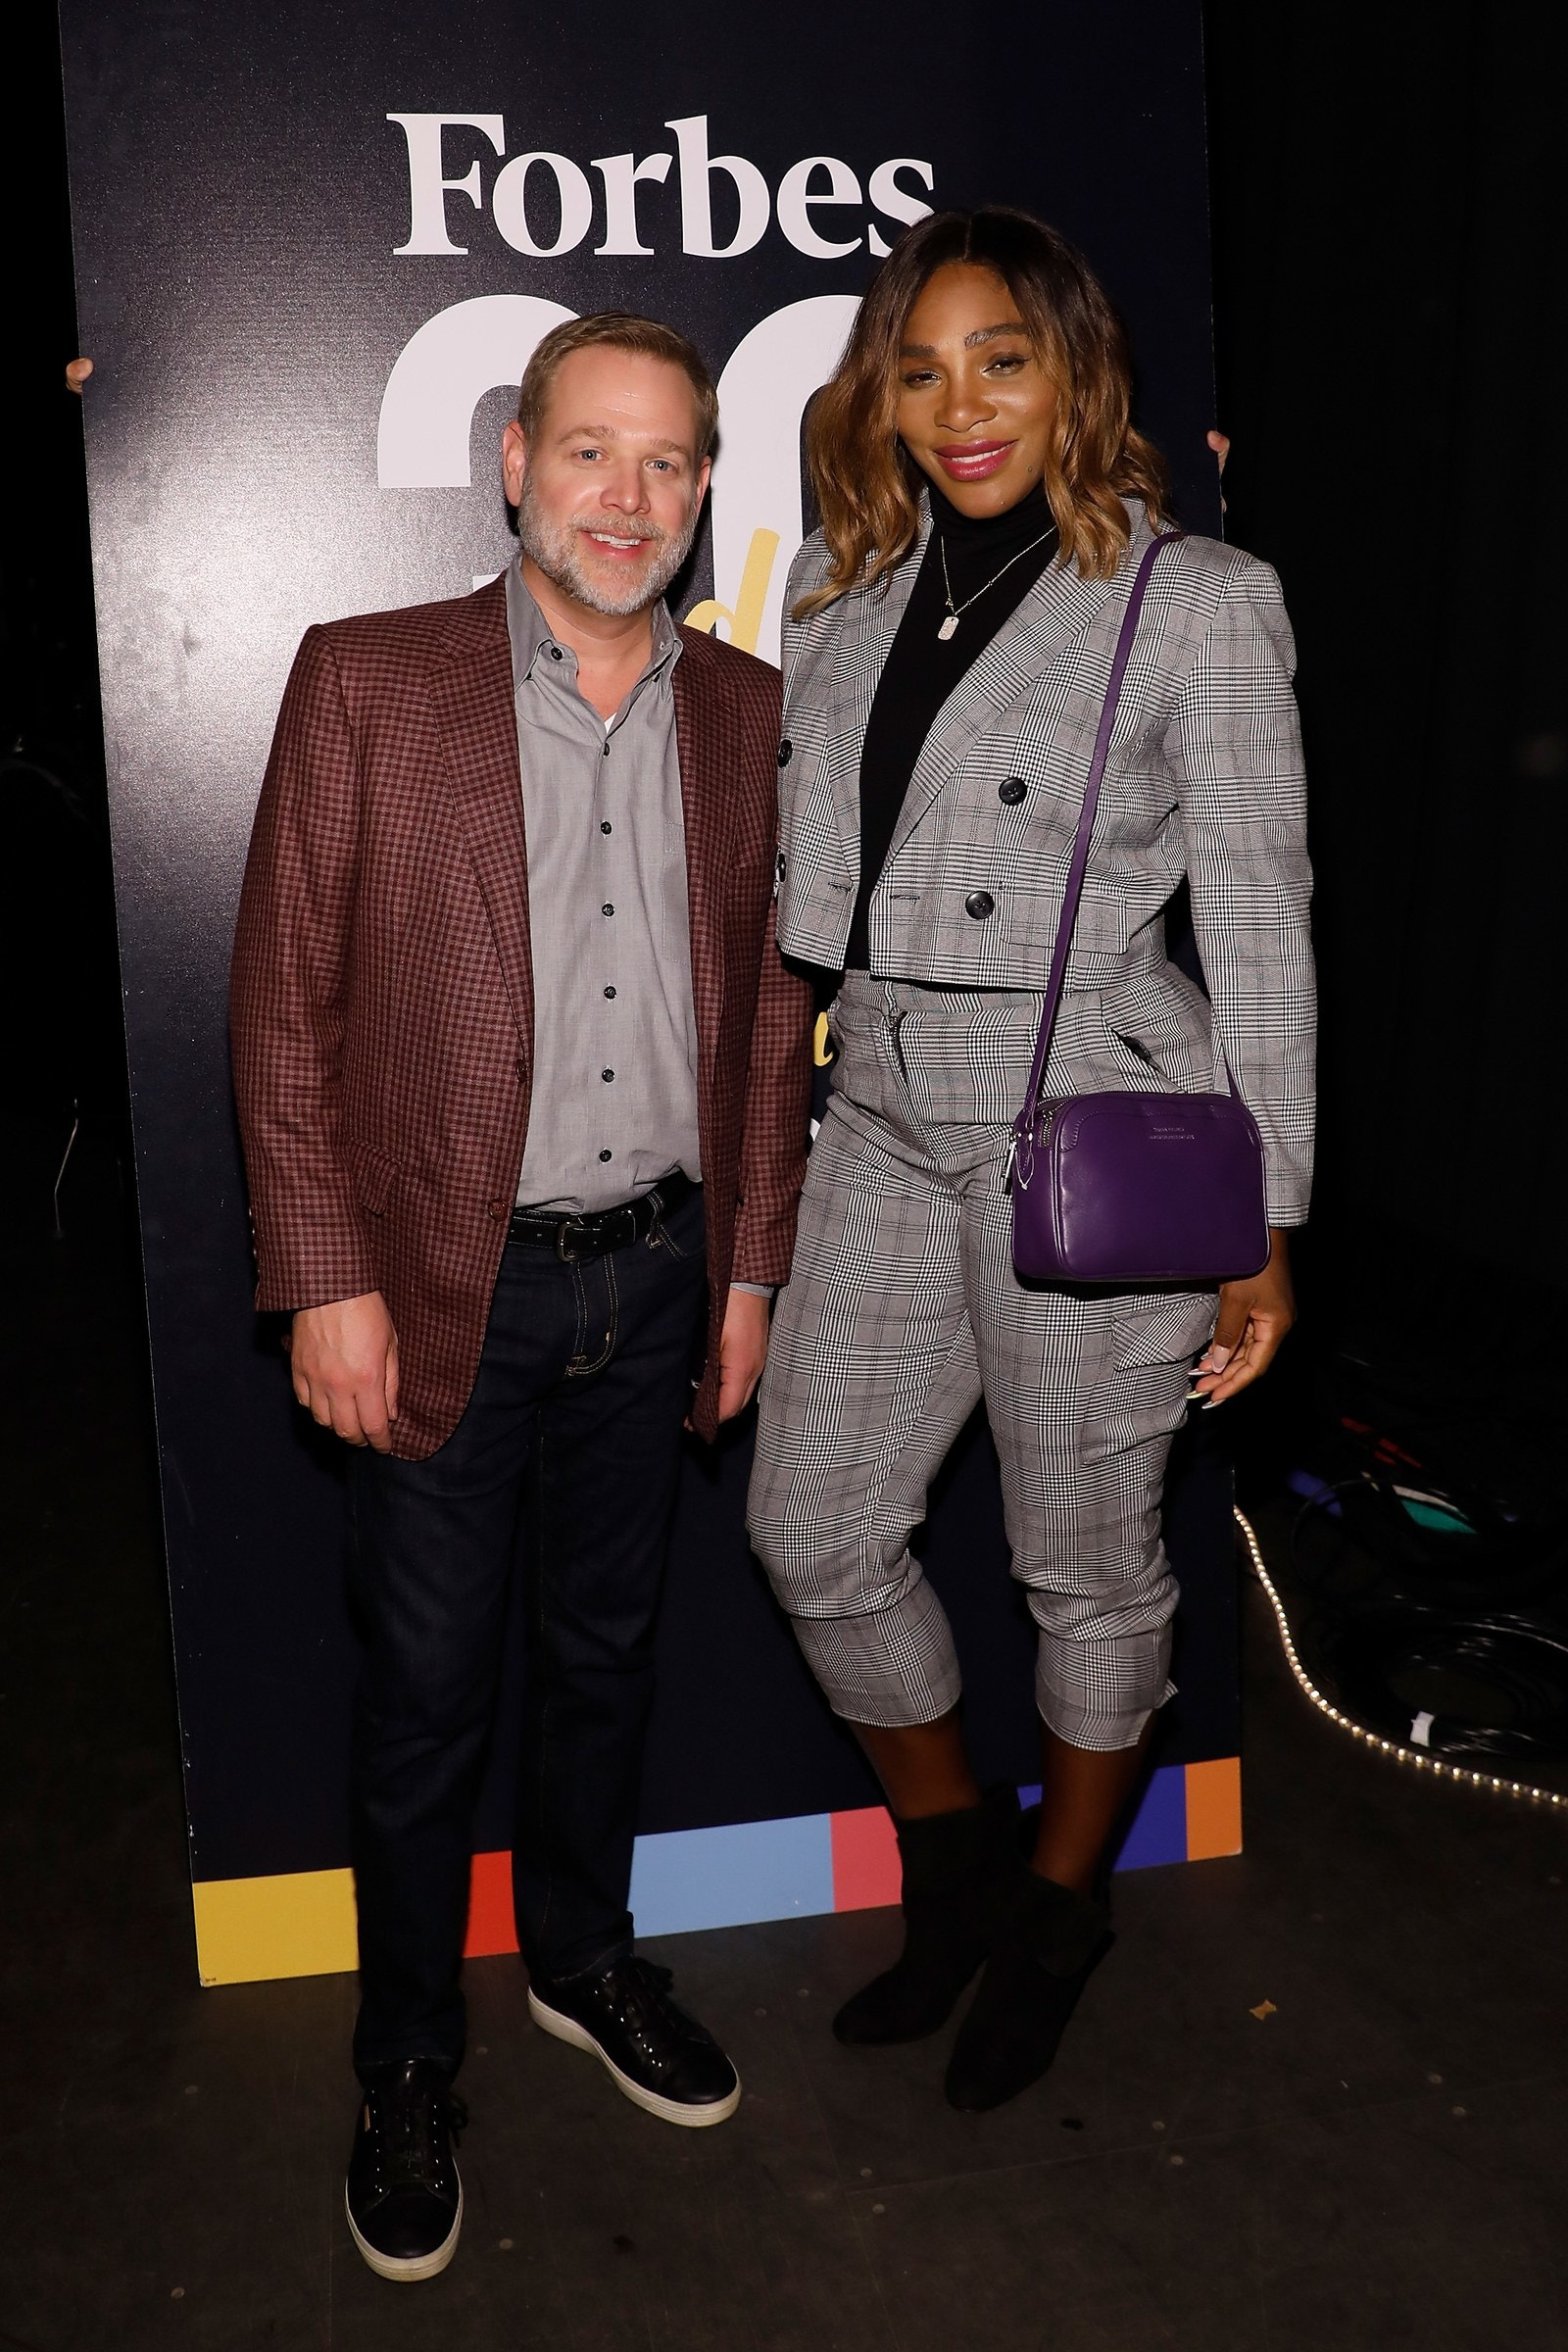 Serena Williams outfit Serena Williams wears a plaid suit at an event